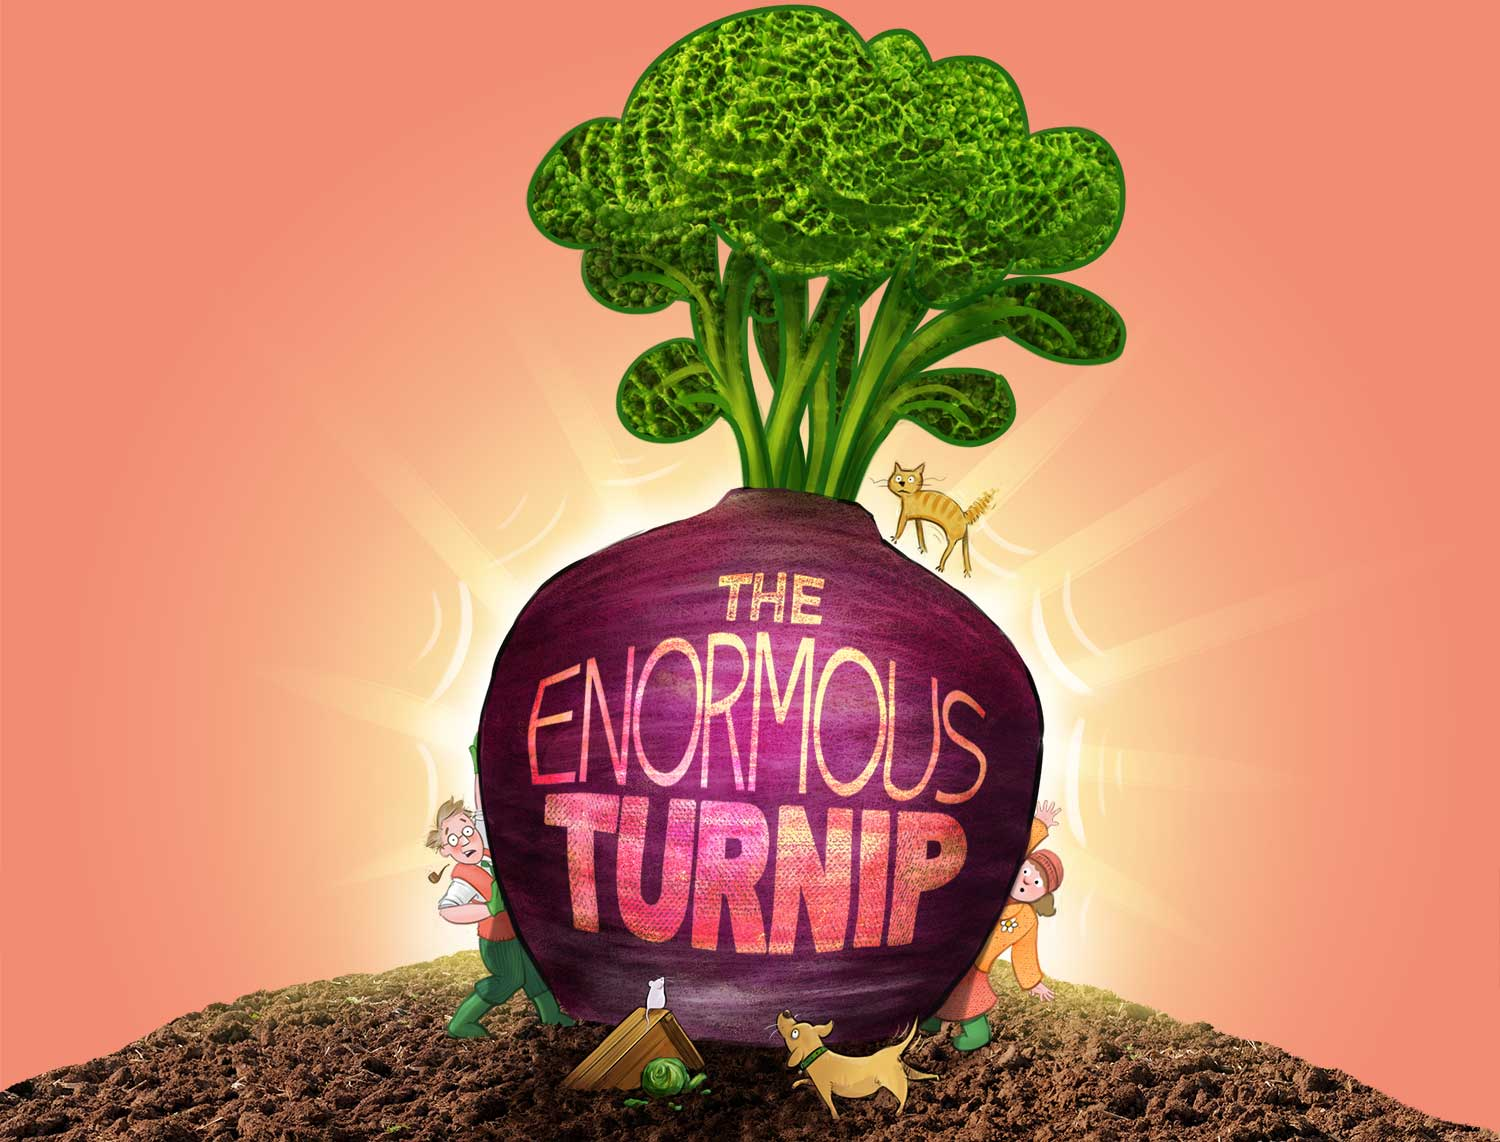 The Enormous Turnip from Stuff and Nonsense Theatre Company